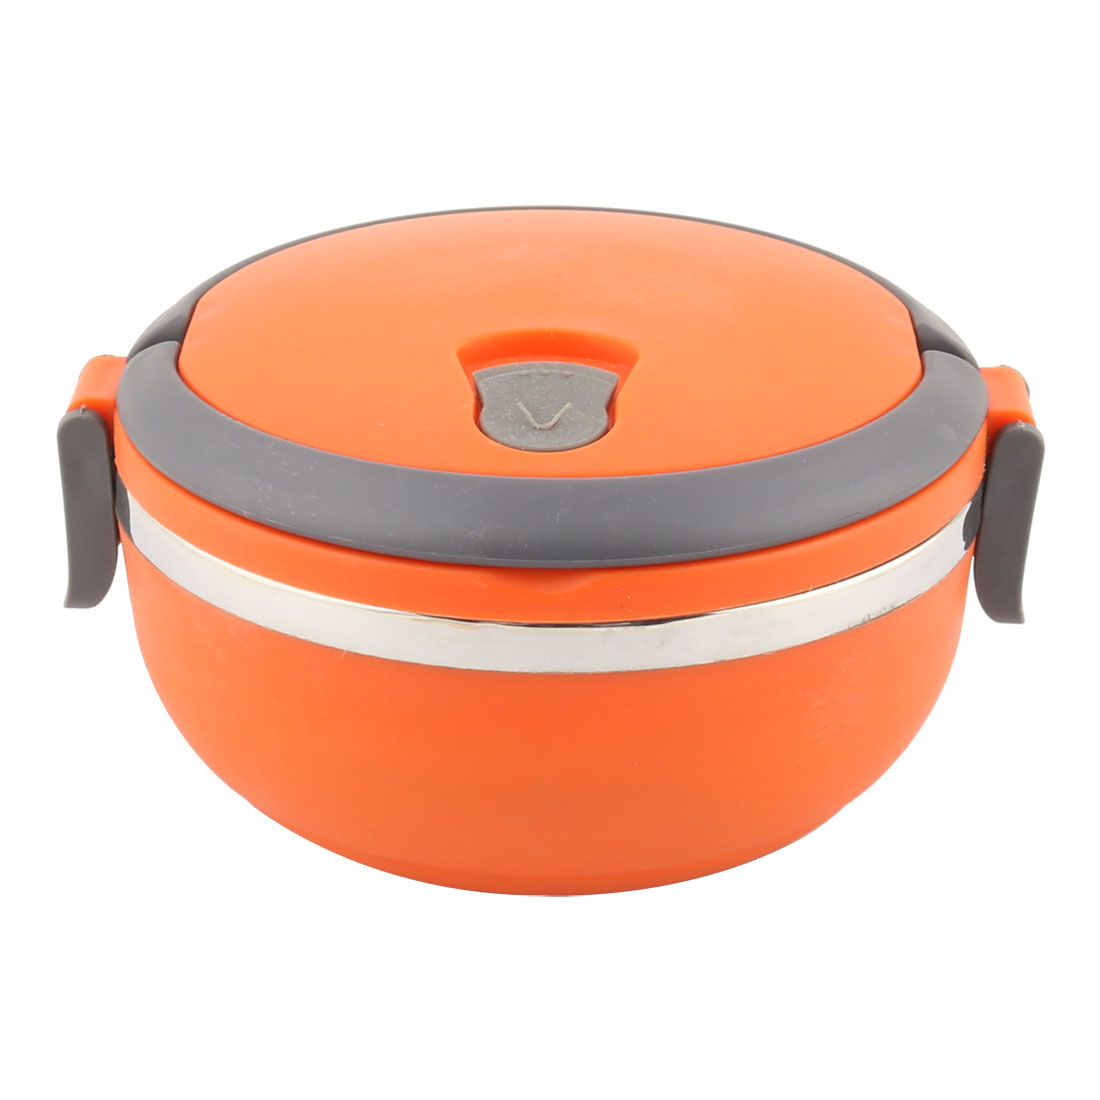 Unique Bargains Home School Office Orange Gray Plastic Handle Stainless Steel Lunch Box Food Container